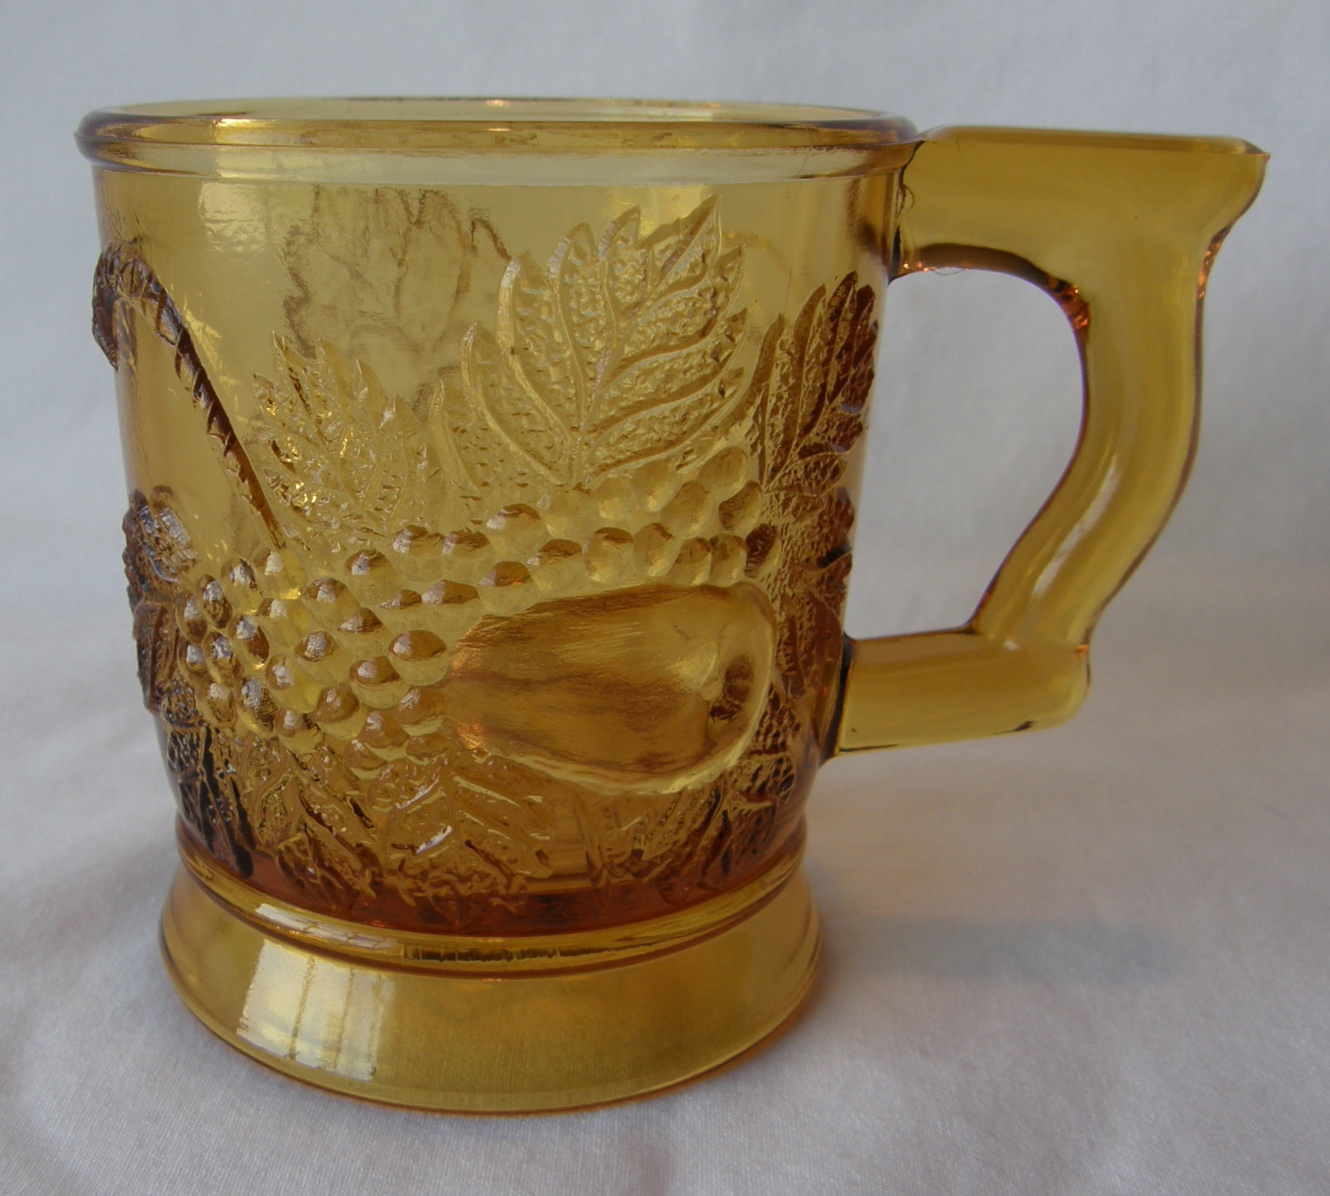 """Strawberry & Pear; handle at right; pear side showing (size: 3"""" diamater x 3-3/8"""" height; color: amber)"""